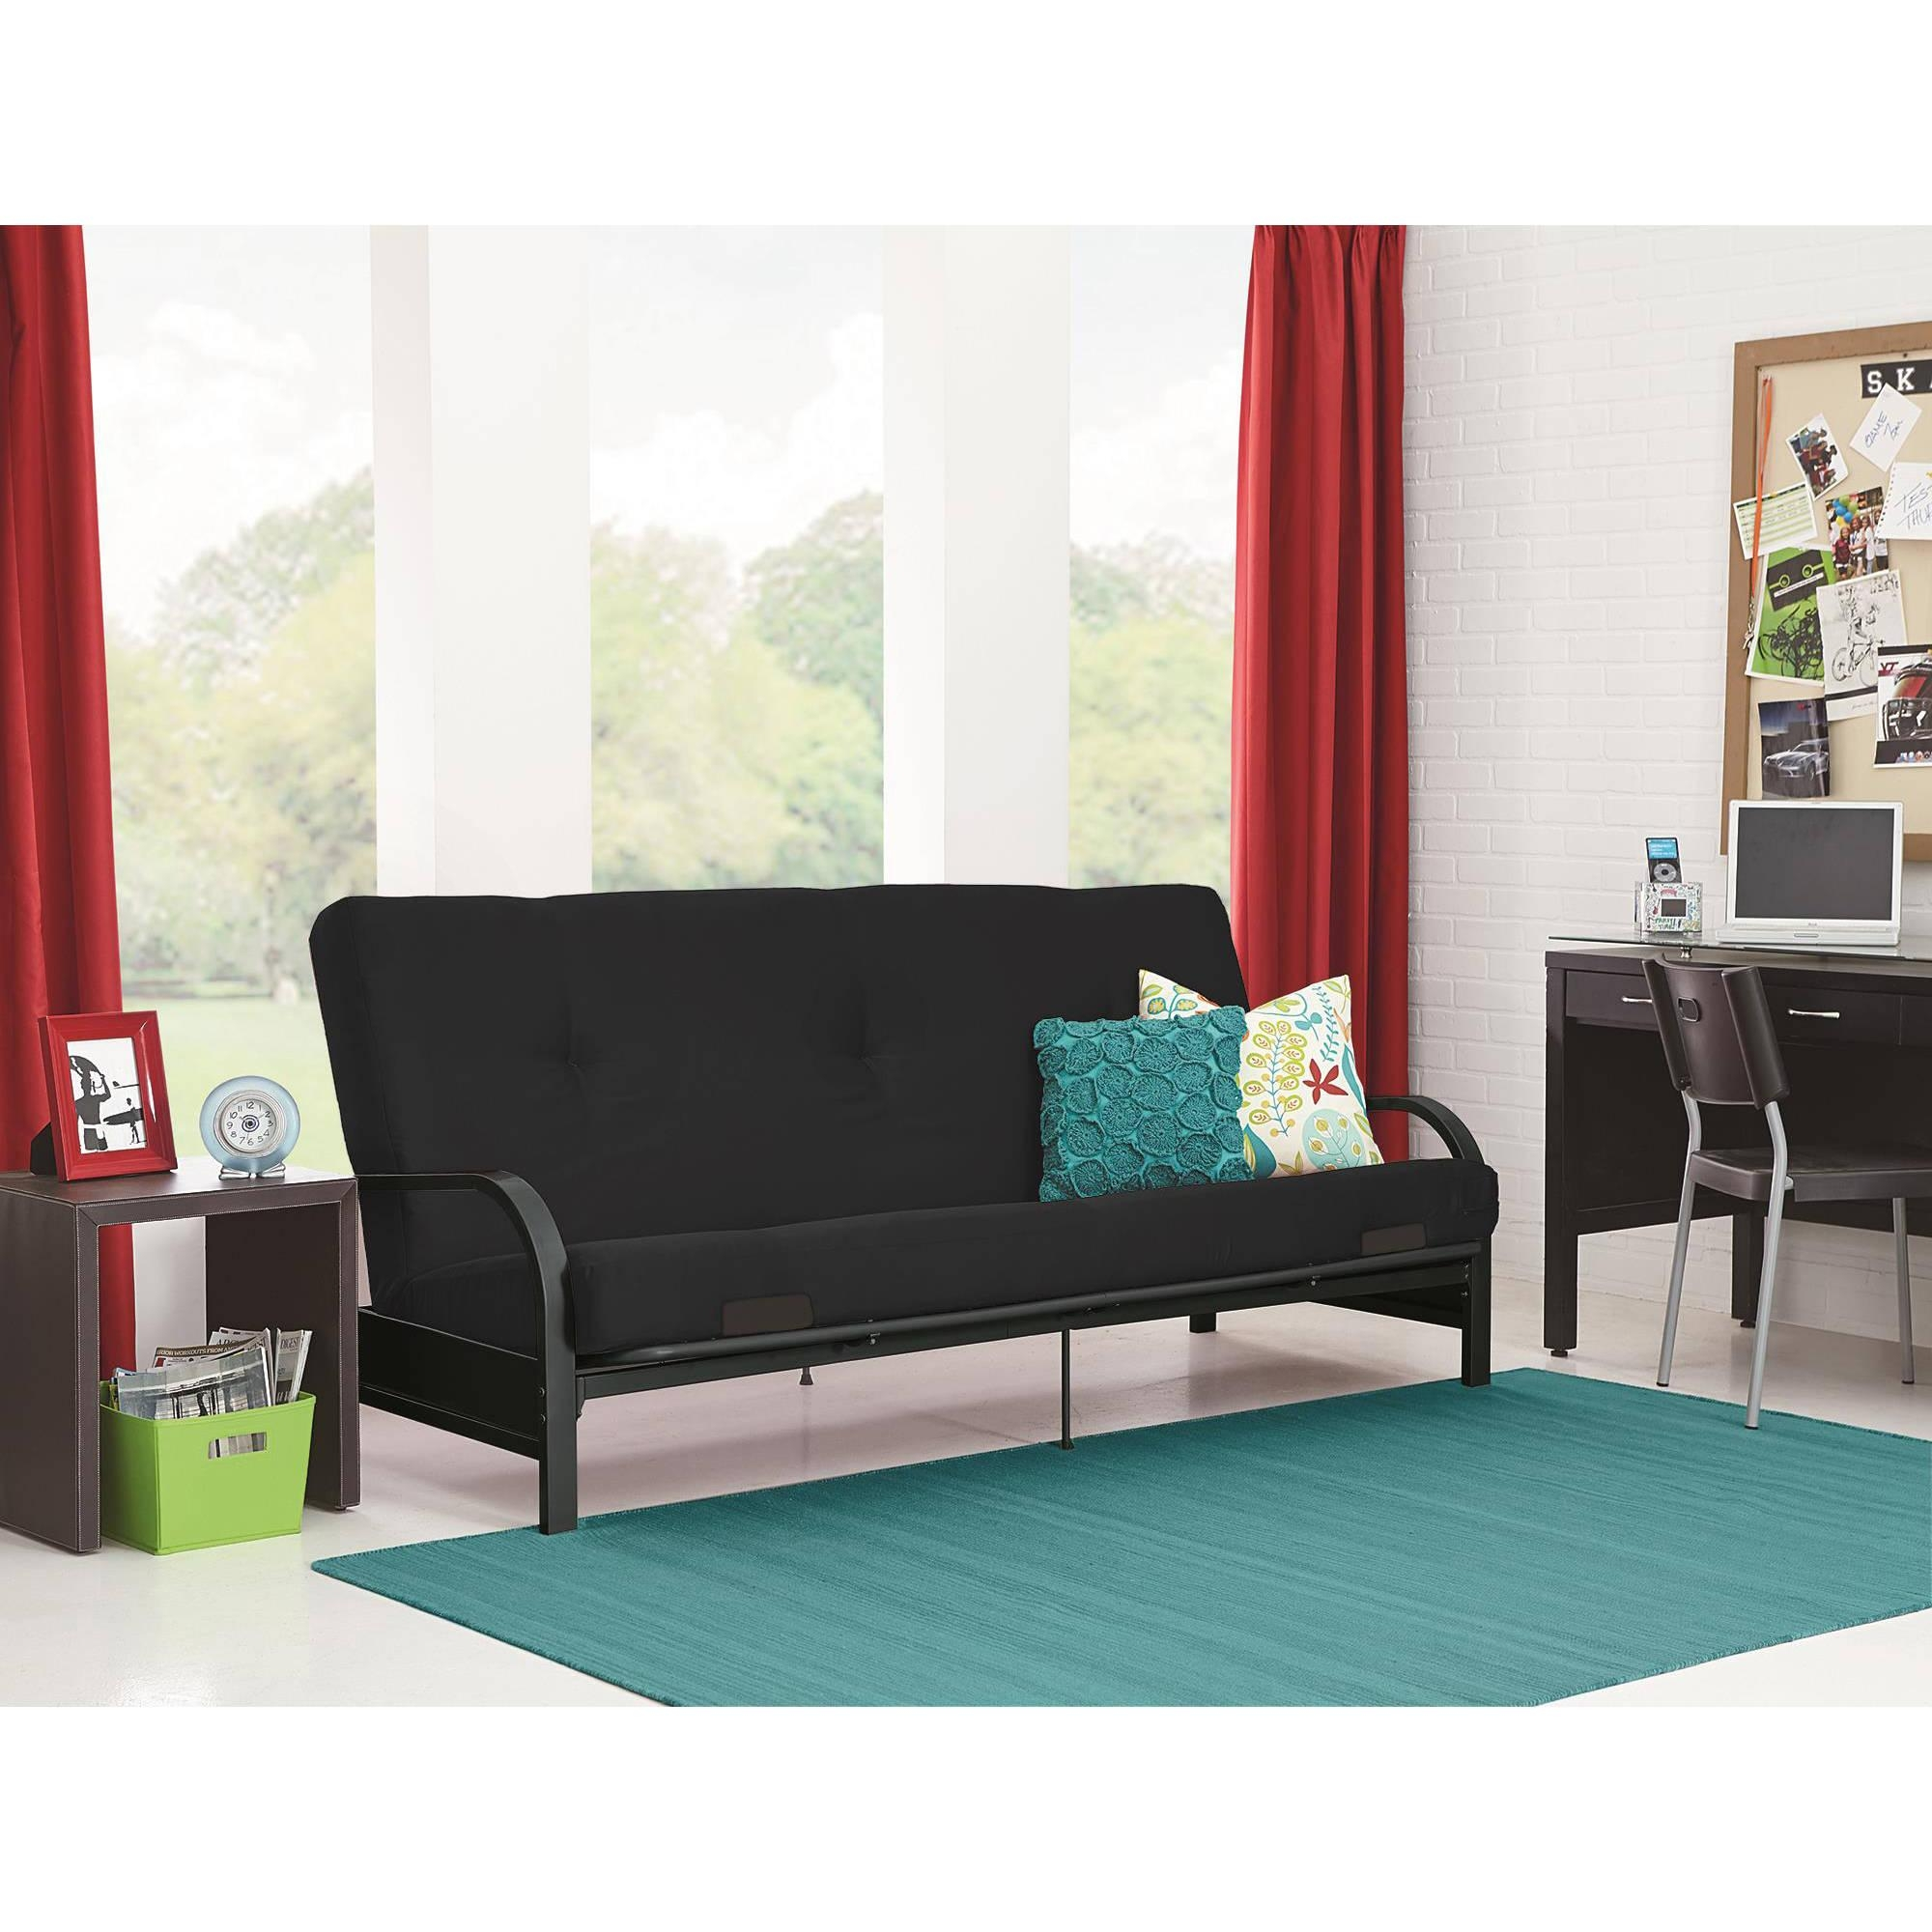 Mainstays Black Metal Arm Futon With Full Size Mattress – Walmart With Regard To Mainstays Sleeper Sofas (Image 5 of 20)